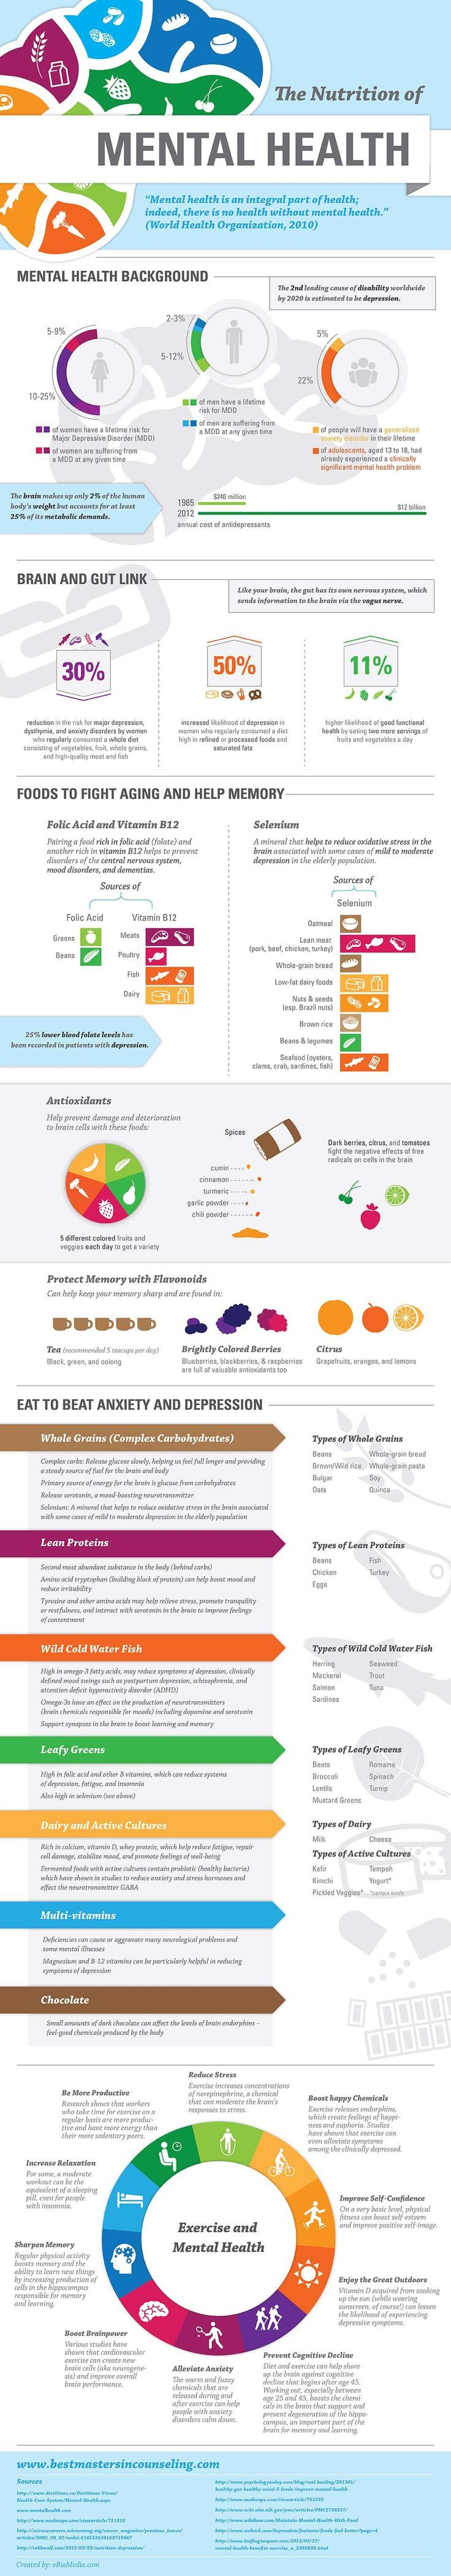 """the nutrition of mental health infographic 